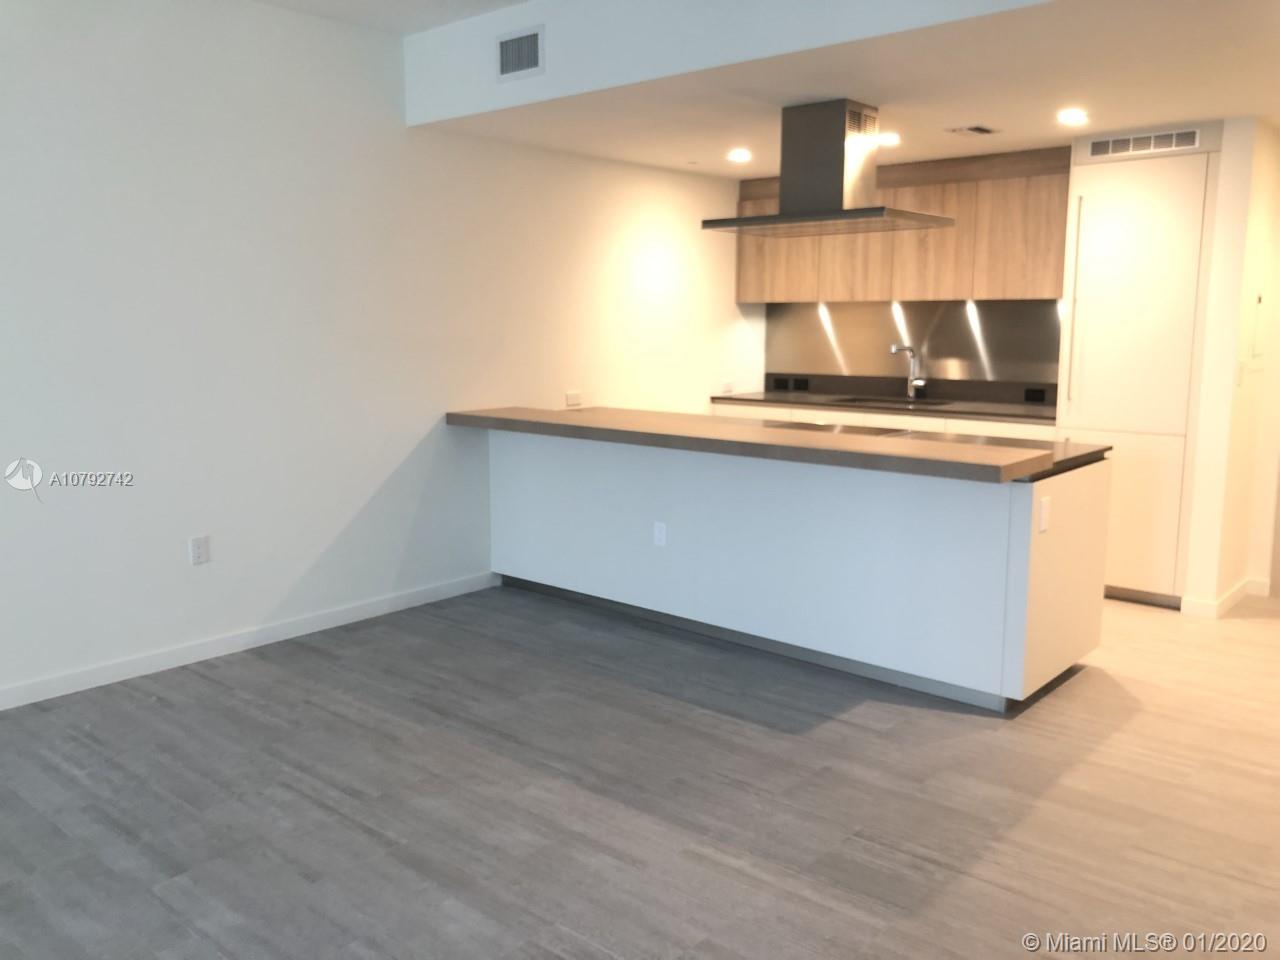 LUXURY BRAND NEW 1 BED 1.5 BATH AT BRICKELL FLATIRON, SPECTACULAR PANORAMIC VIEWS, ITALIAN FLOORS, SNAIDERO KITCHEN CABINETS, WOLF APPLIANCES, FIVE START AMENITIES INCLUDED: FITNESS CENTER, ROOF TOP 65 FLOOR POOL, RESTAURANT, CONCIERGE, CIGAR ROOM AND MORE... BEST PRICE!! VACANT AND VERY EASY TO SHOW!!